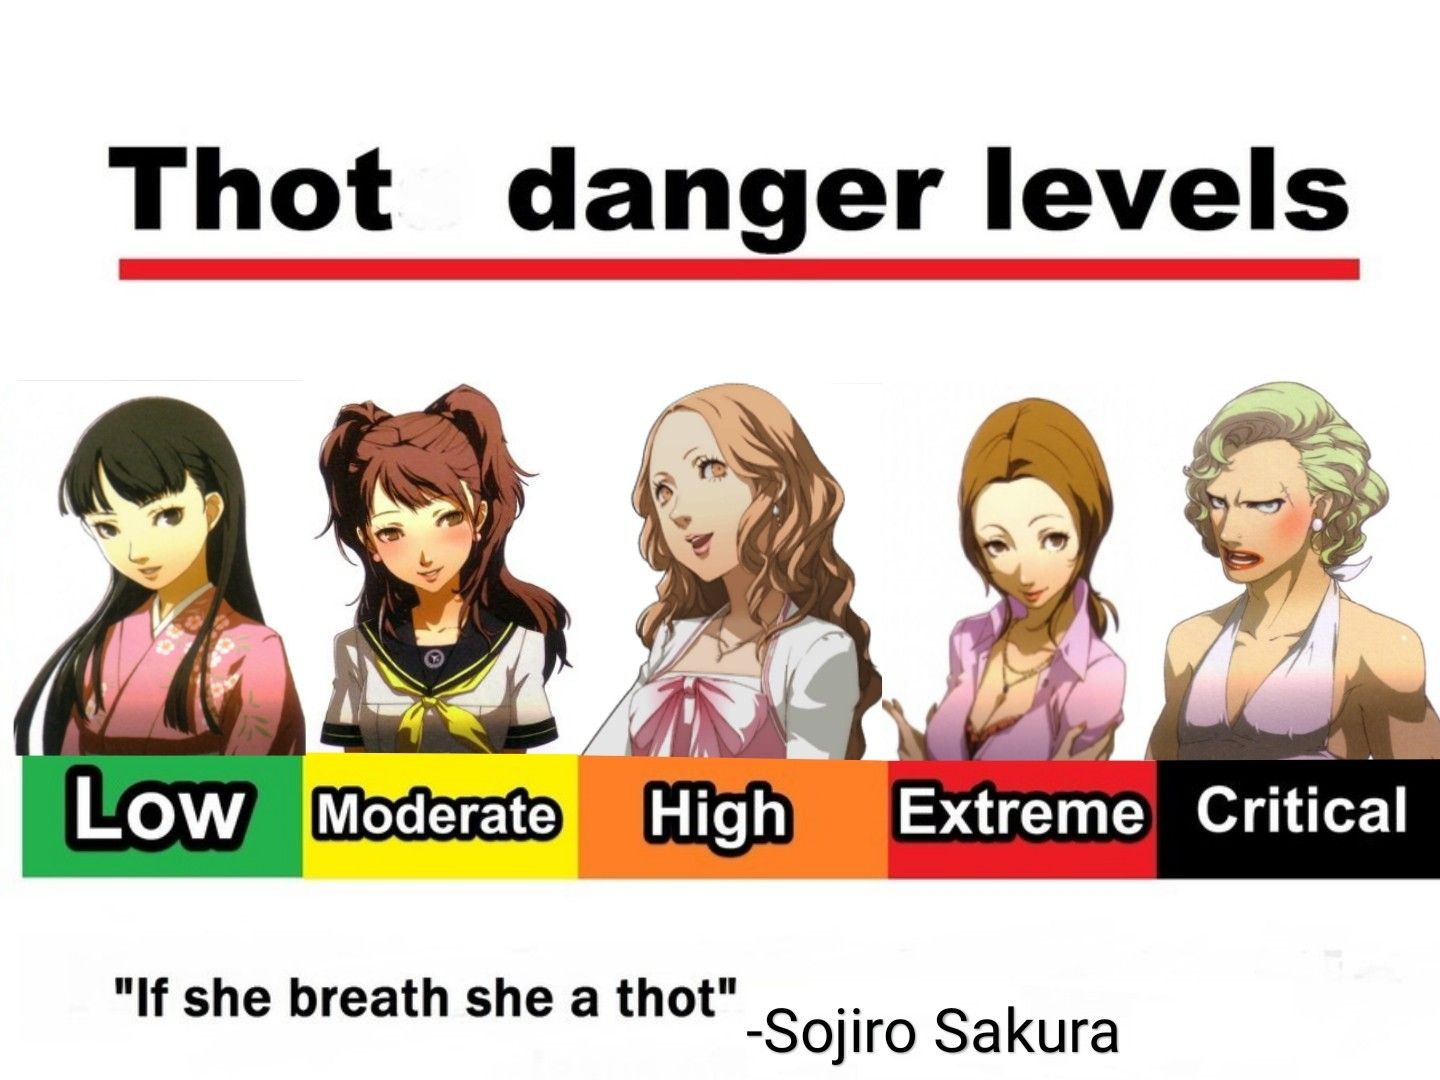 Pin by Phoenix Sylph on For swordfall memes | Persona 5 ...